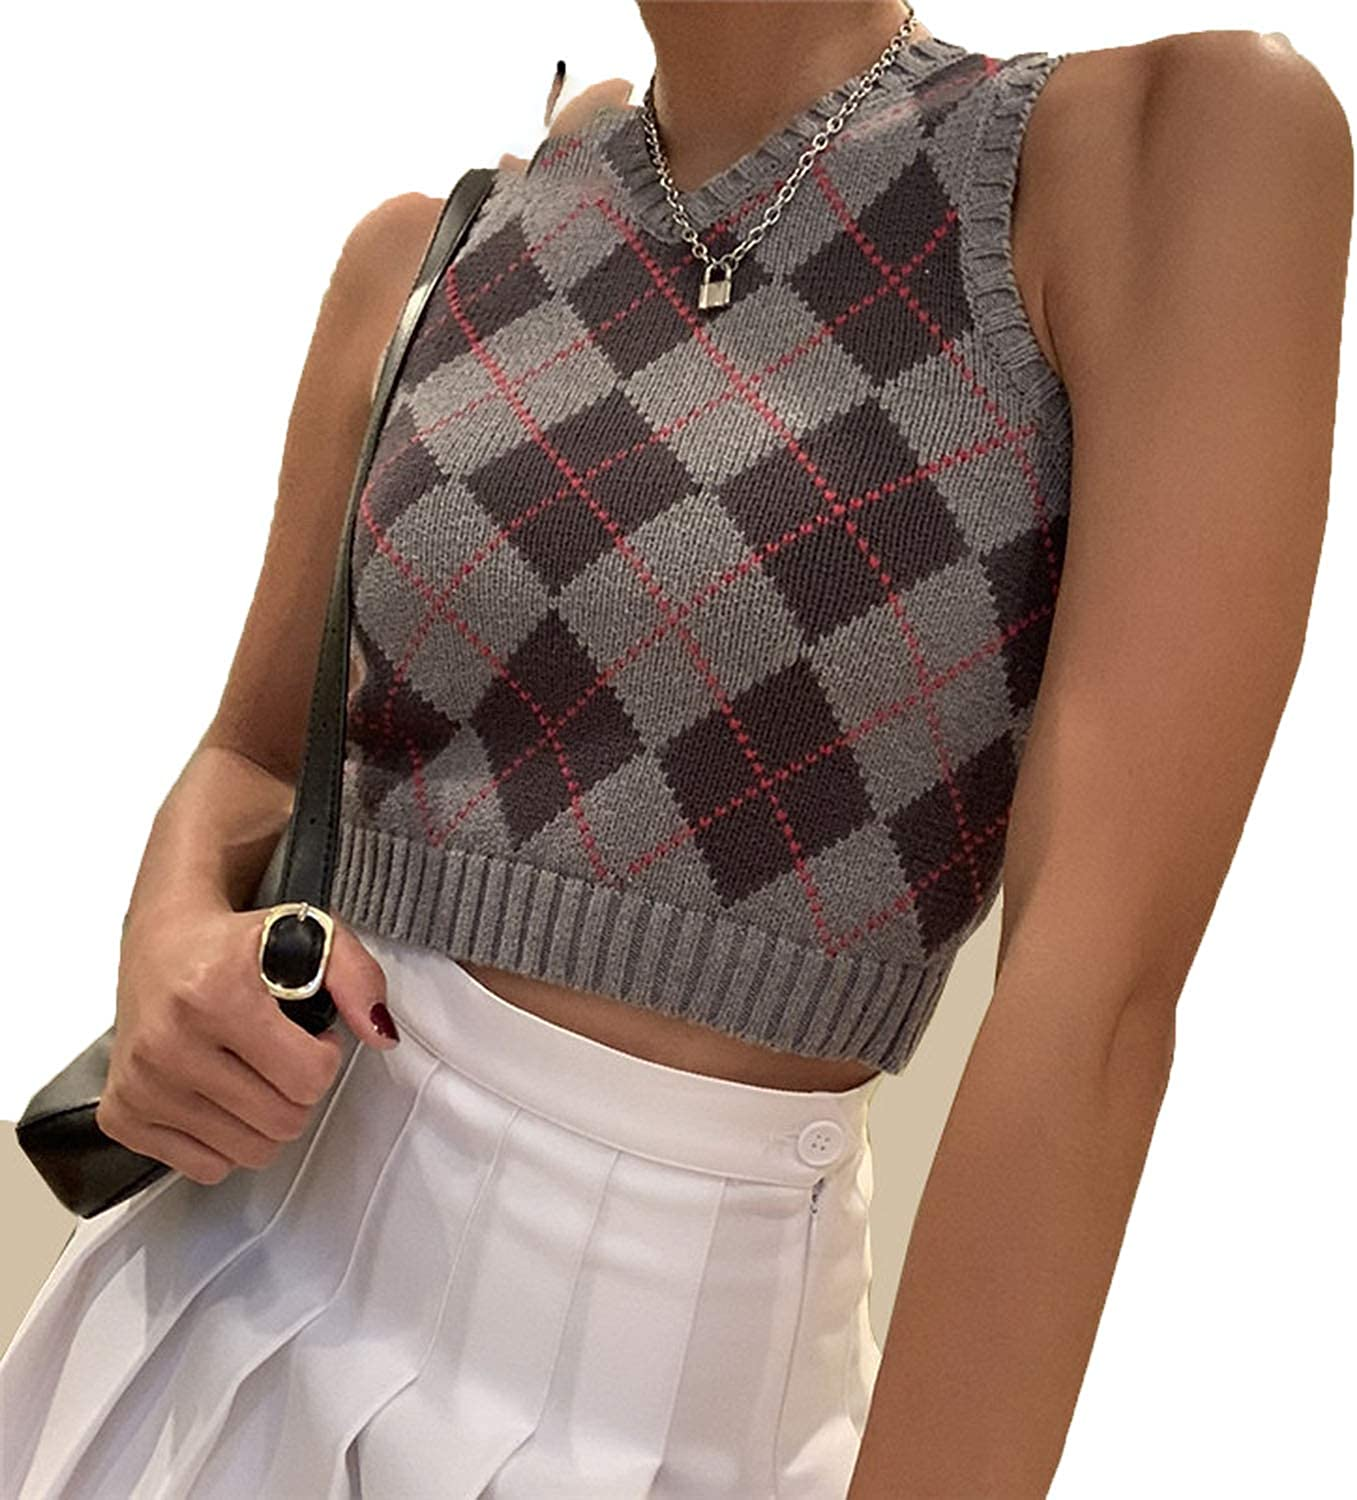 Sweater Vest Y2k Women Plaid Knitted V Neck Vest Sleeveless Knitted Jumper Ladies Pullover Vest Sweater Gilet Women Color : Sia-pink, Size : S